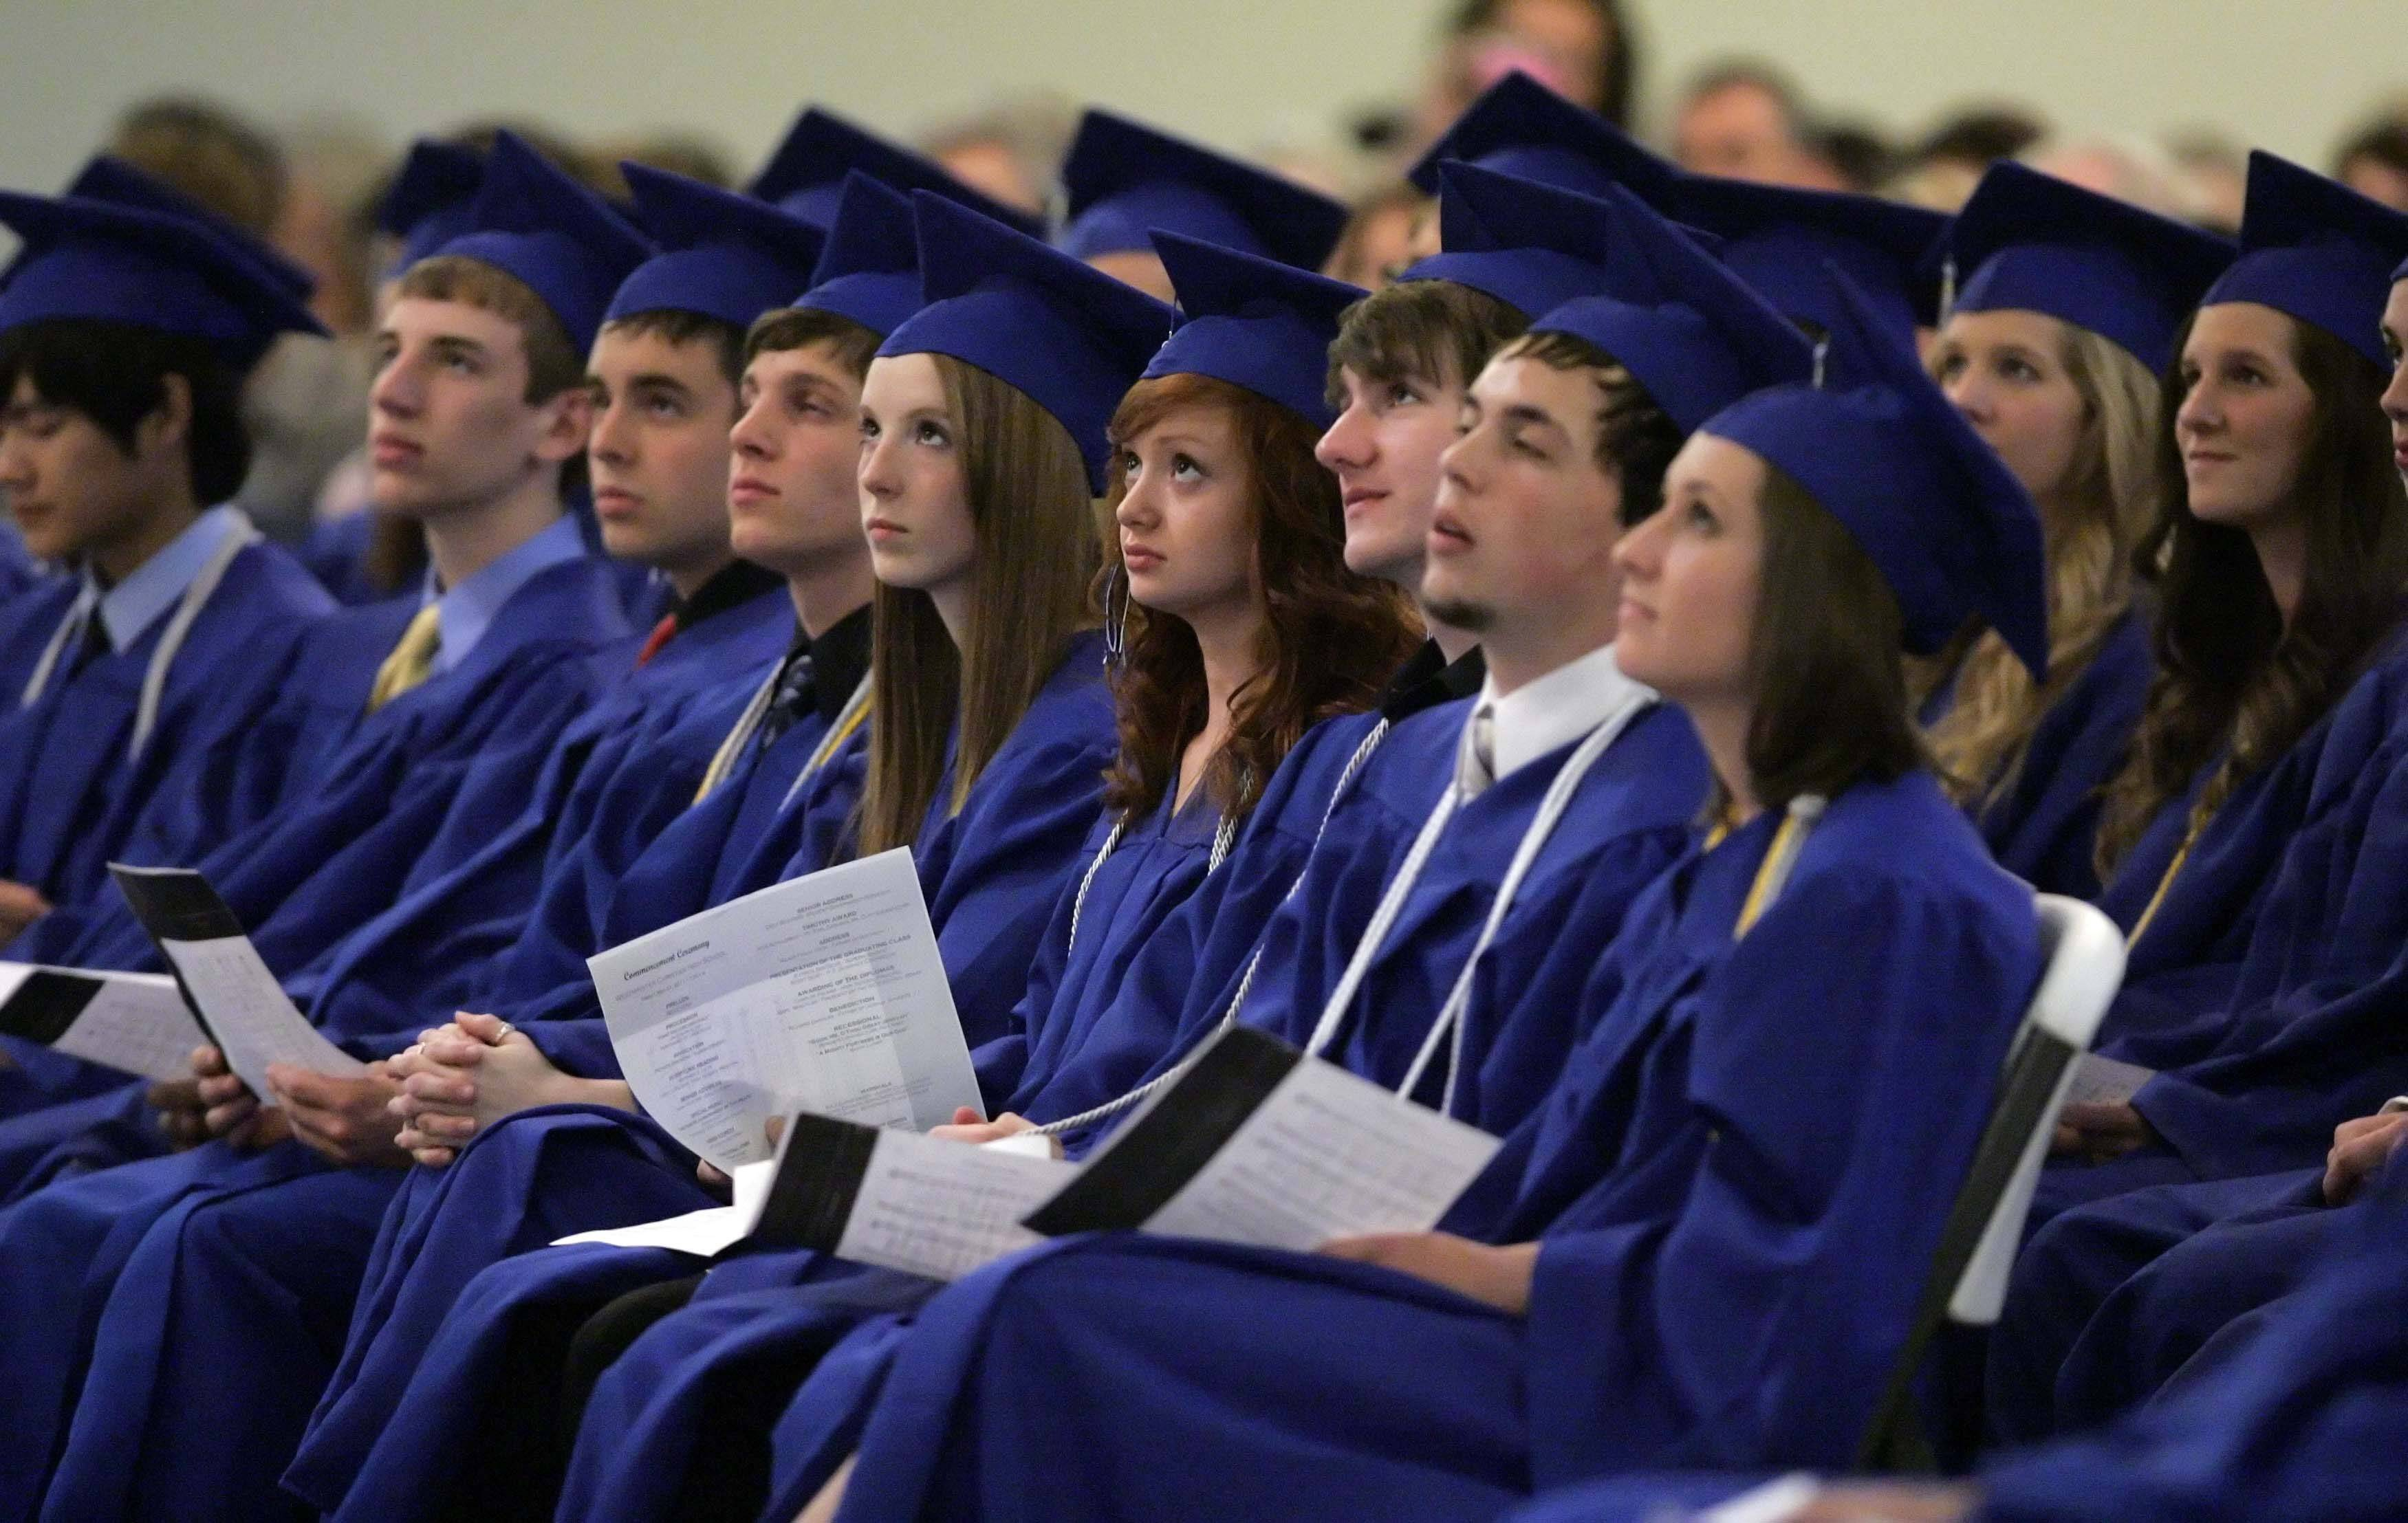 Images from the graduation ceremony at Westminster Christian High School Friday, May 27, 2011.